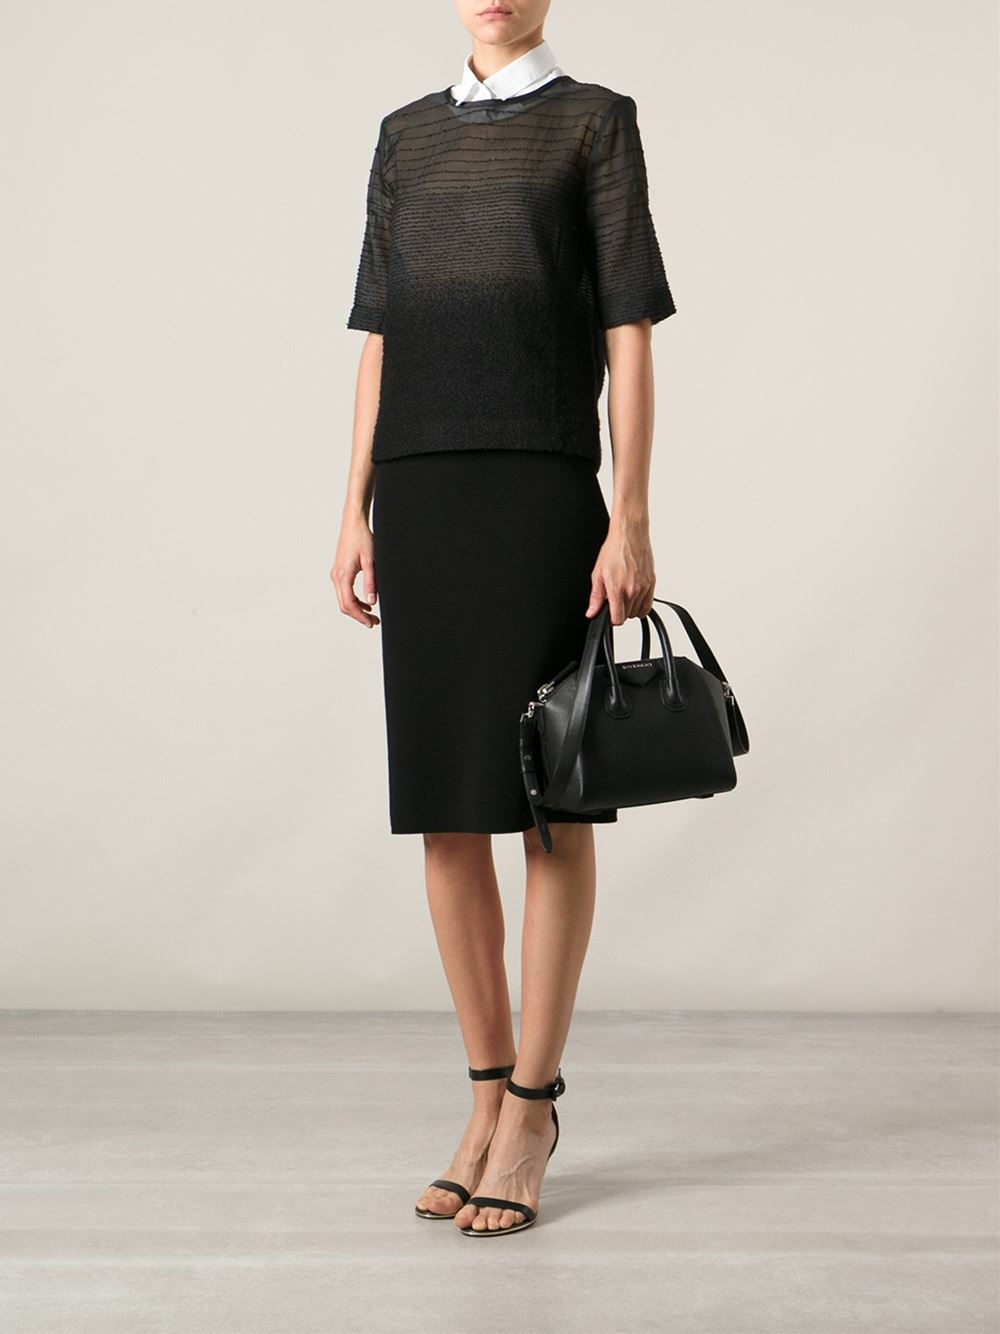 Mi Ni Clips: Givenchy Mini 'Antigona' Tote In Black